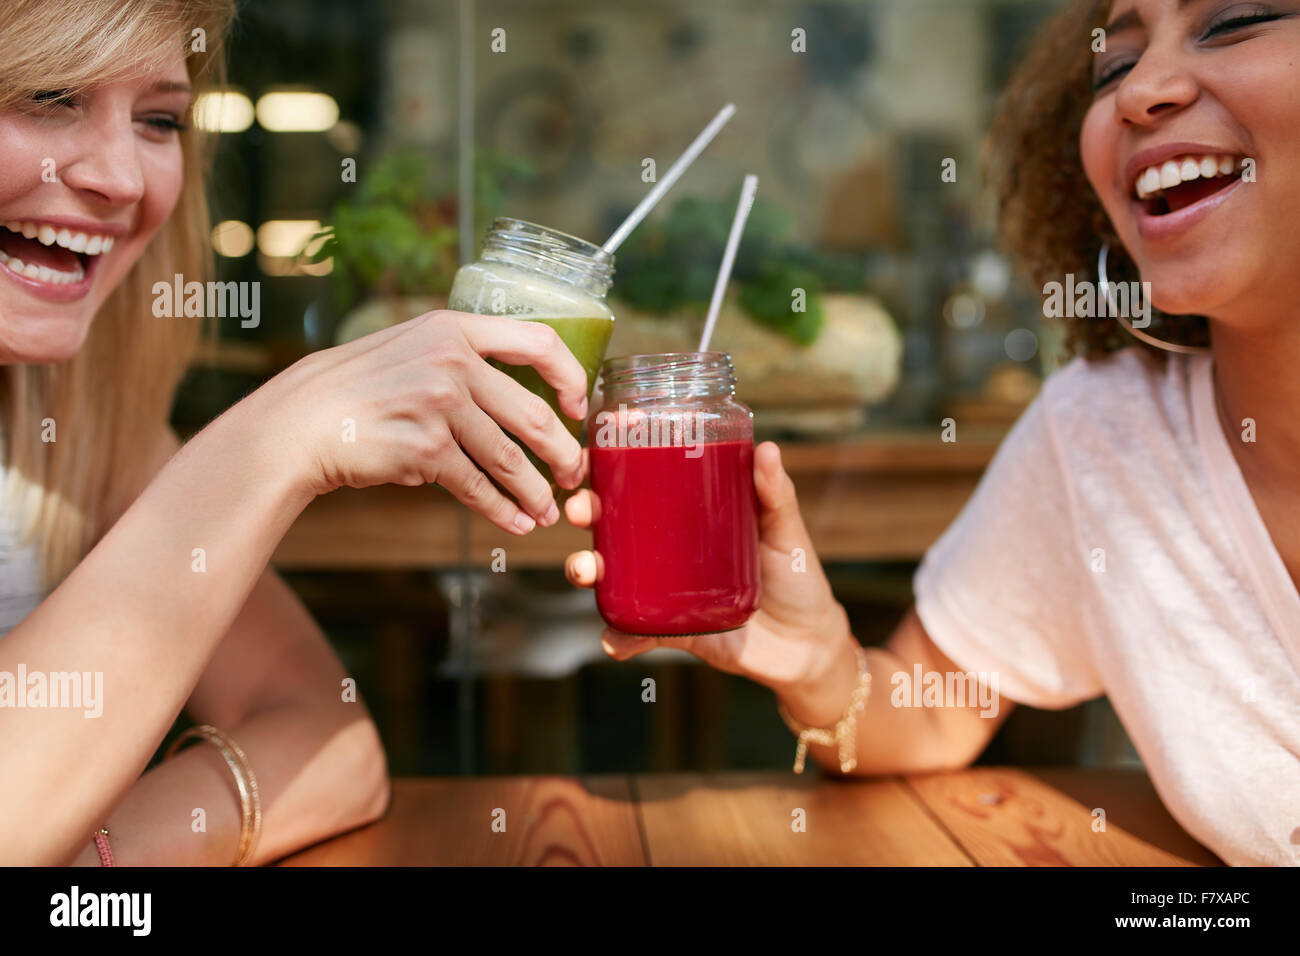 Close up shot of young friends toasting drinks at sidewalk cafe. Deux femmes heureux de prendre un verre et discuter Banque D'Images